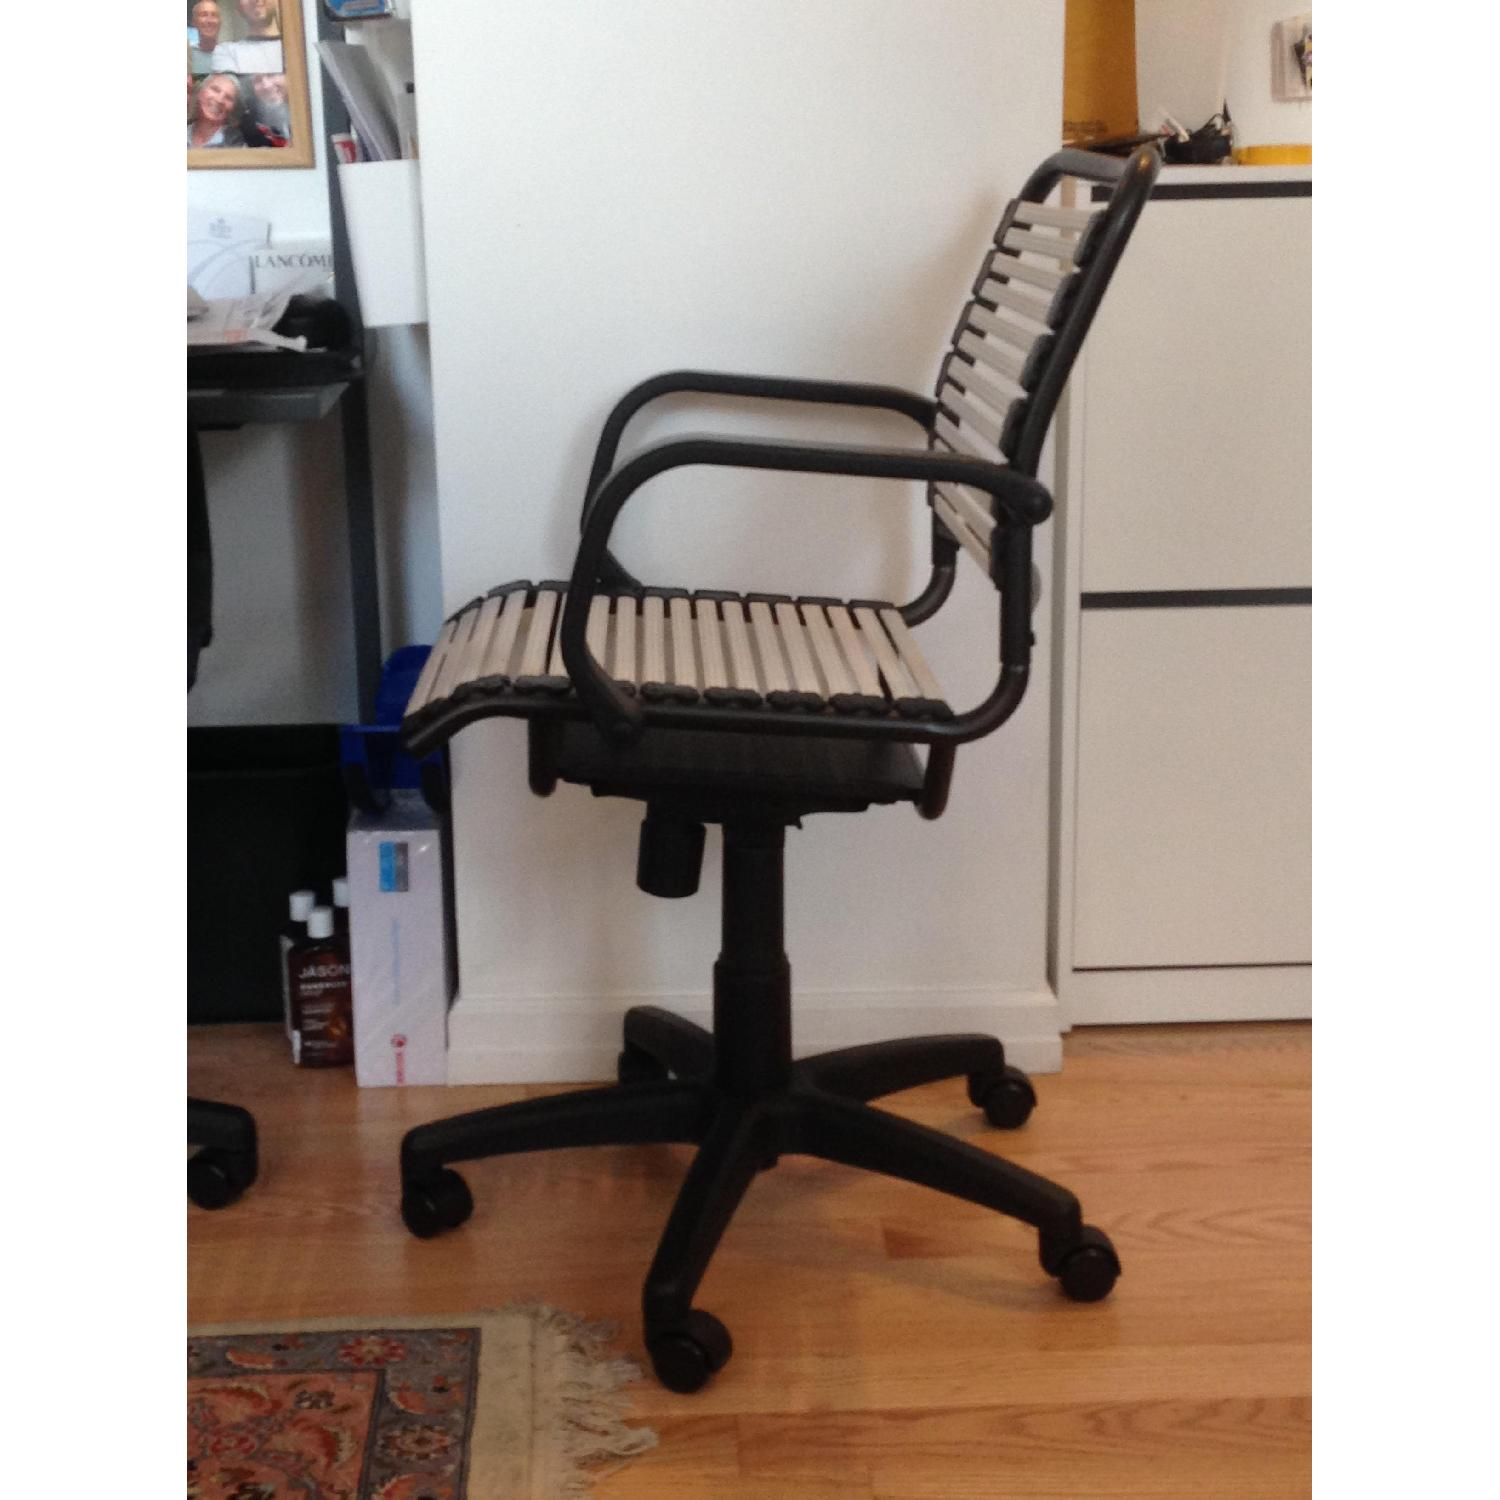 Container Store White Flat Bungee Office Chair w/ Arms - image-3